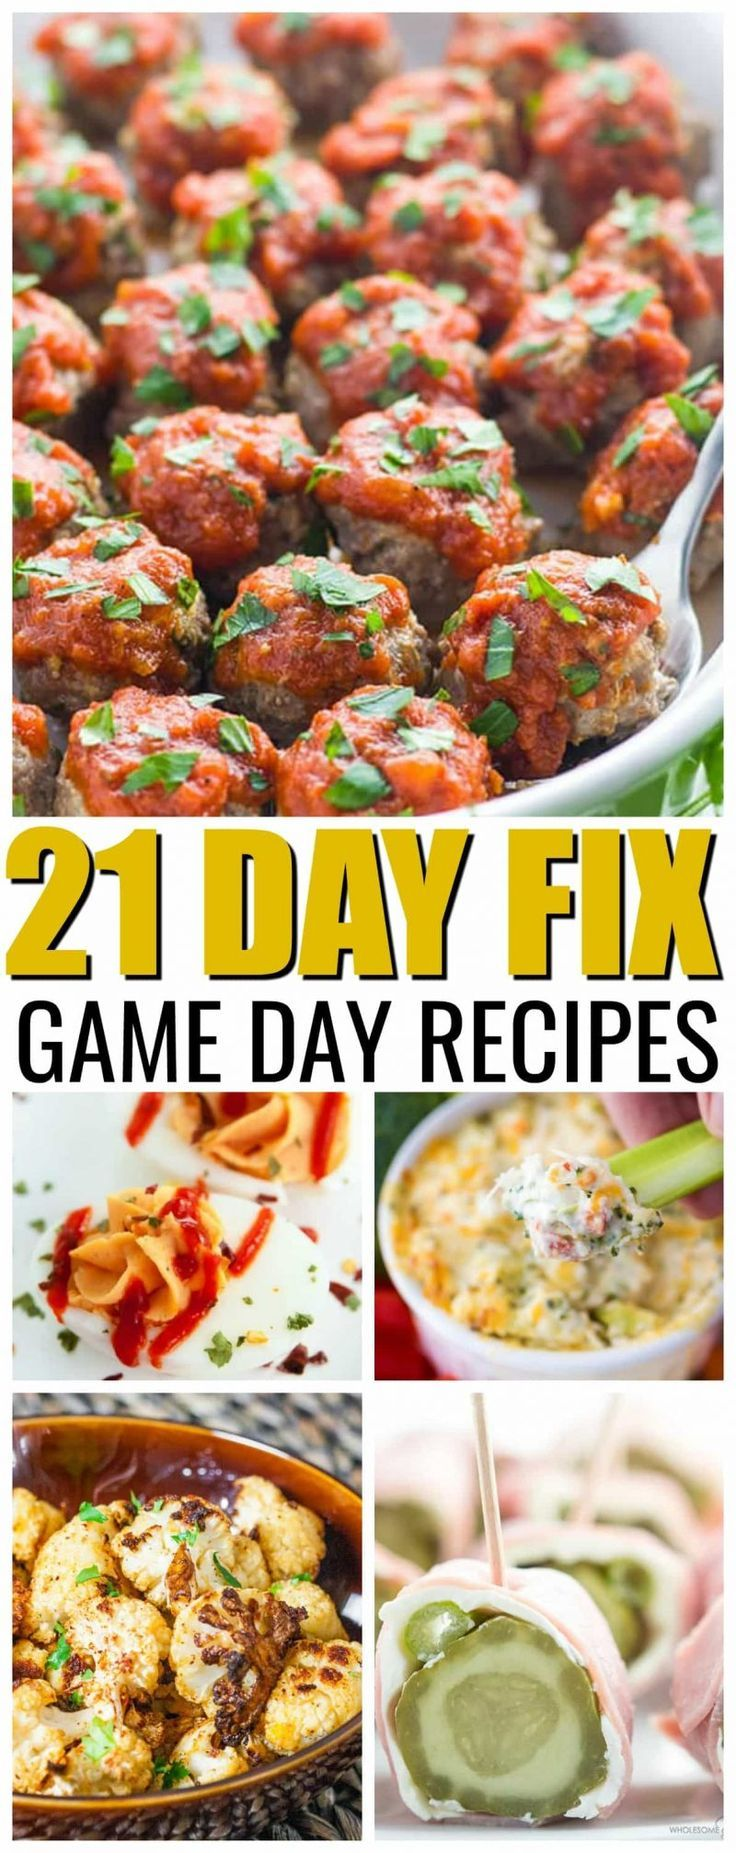 21 Day Fix Game Day Foods -